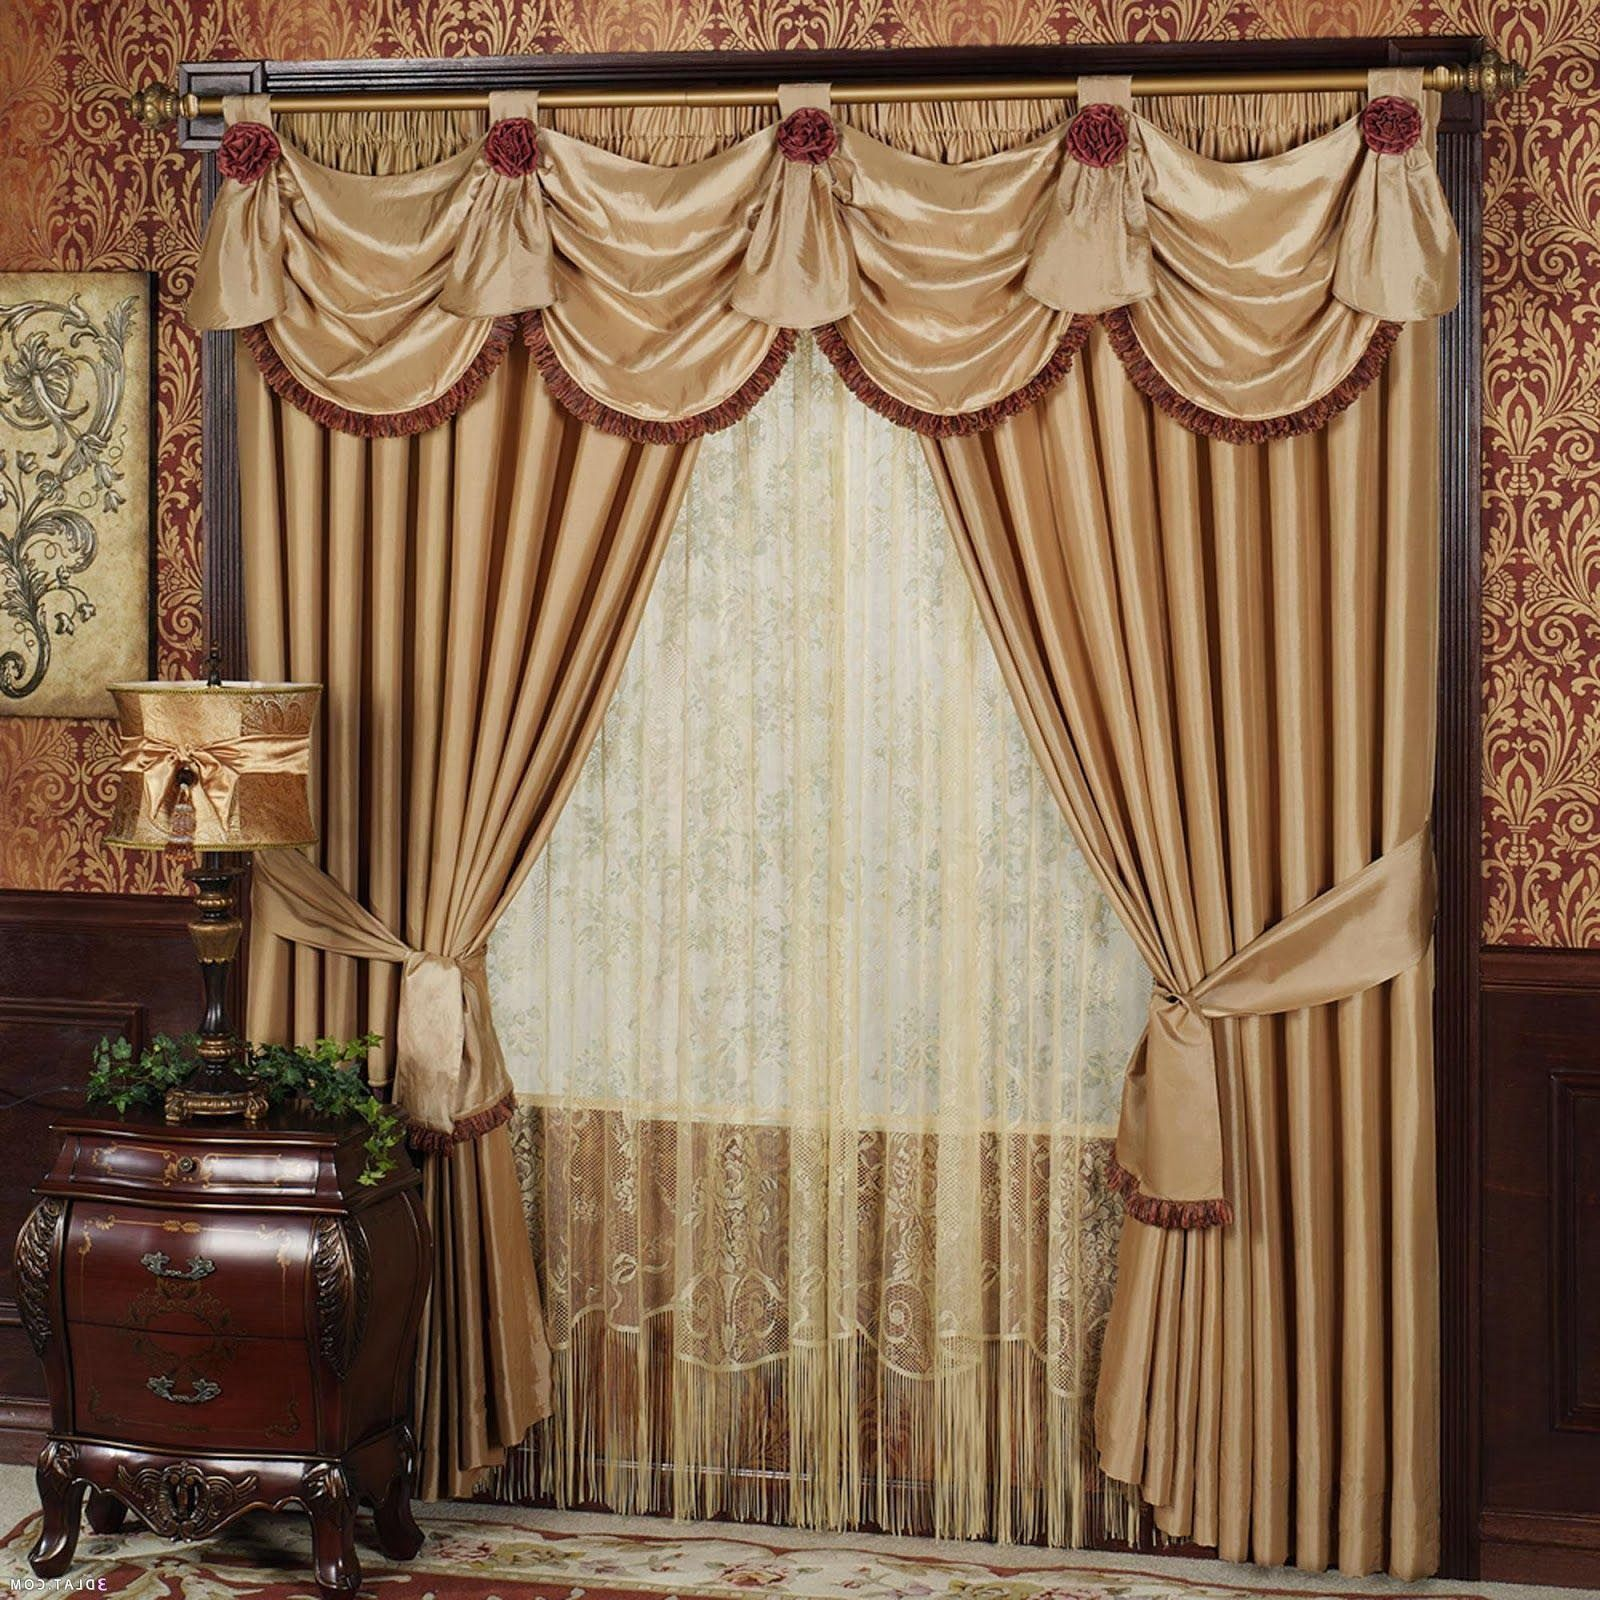 surripui ideas valance room of valances dining design treatments living transitional nice new window curtain